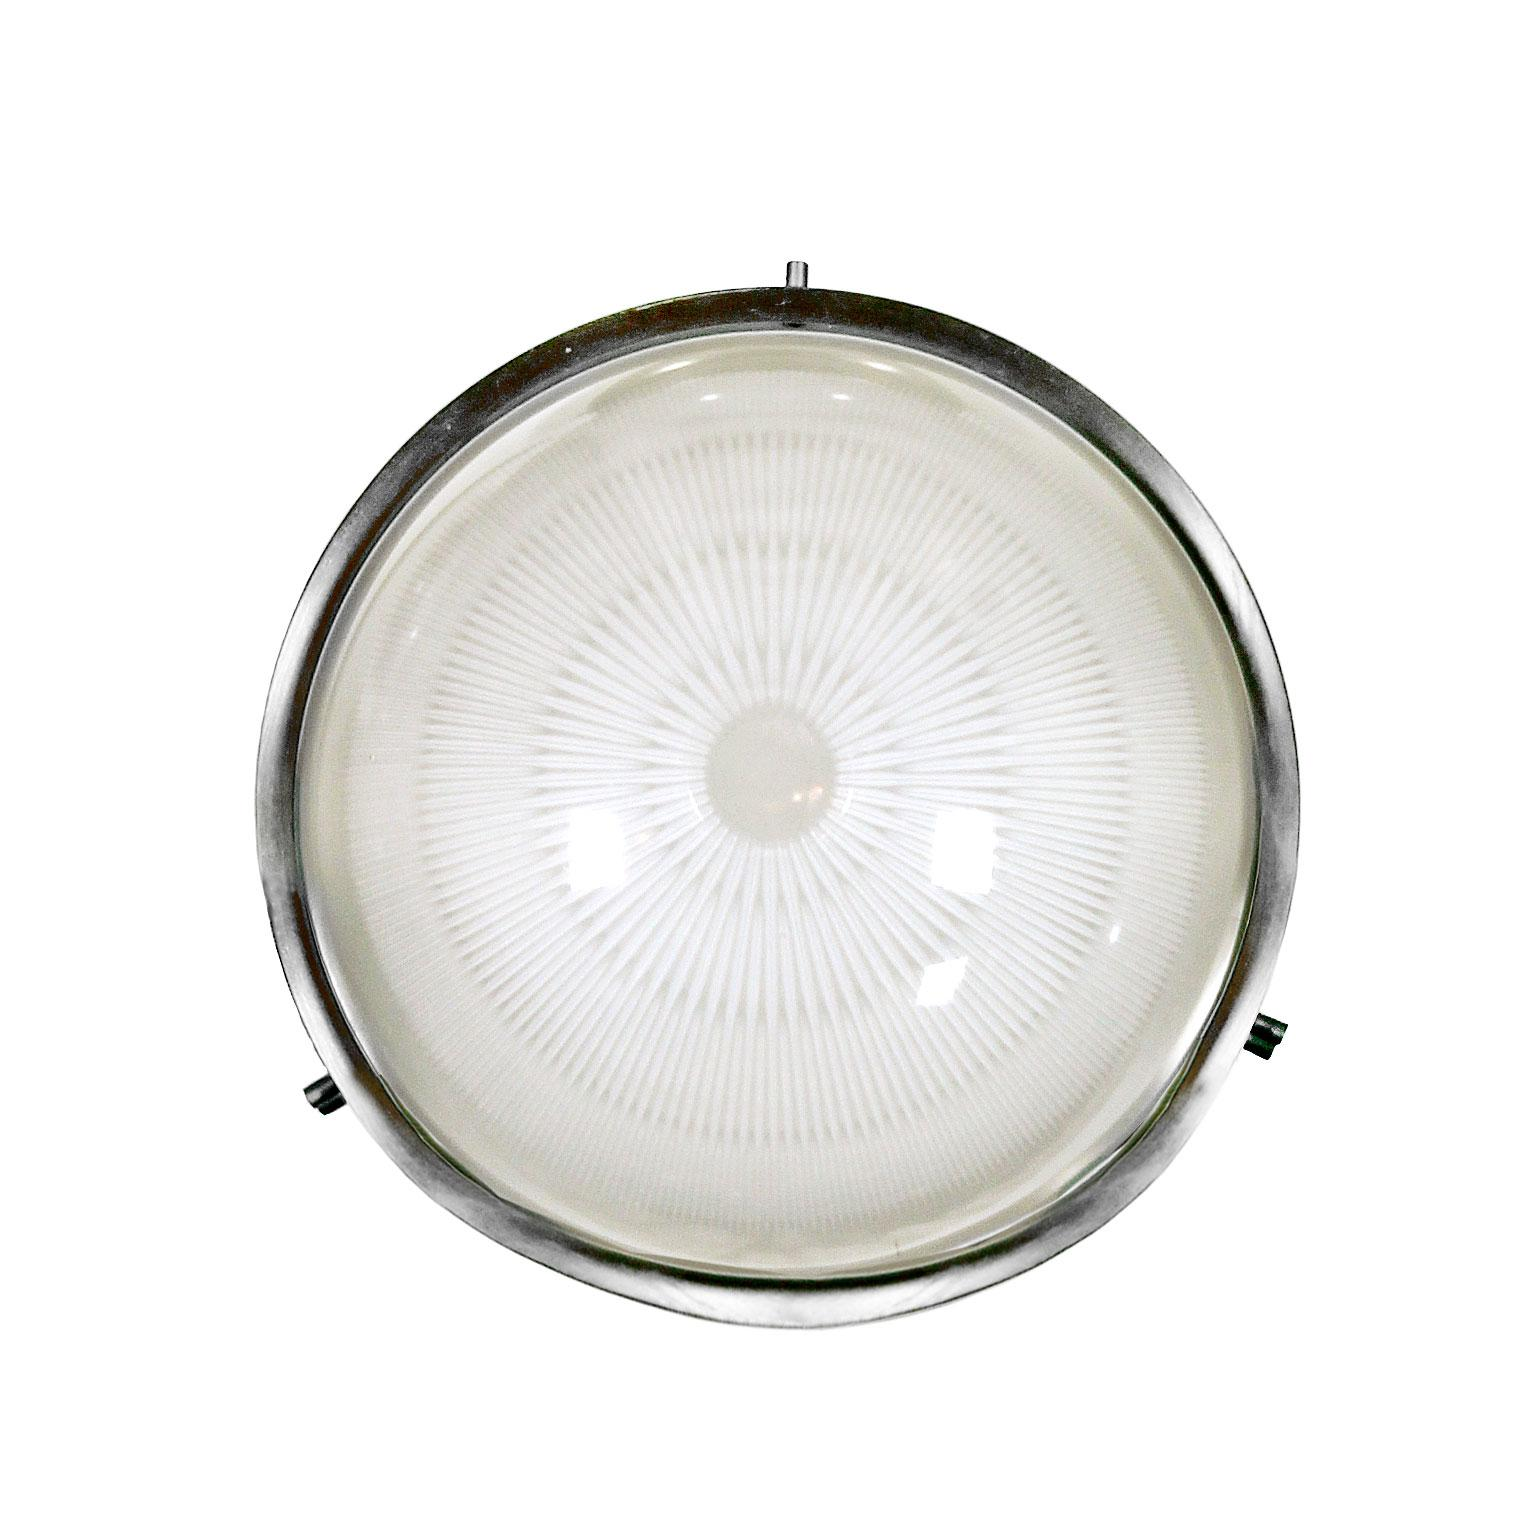 """1960s Ceiling or Wall Light """"Sigma"""" by Sergio Mazza for Artemide, Italy"""